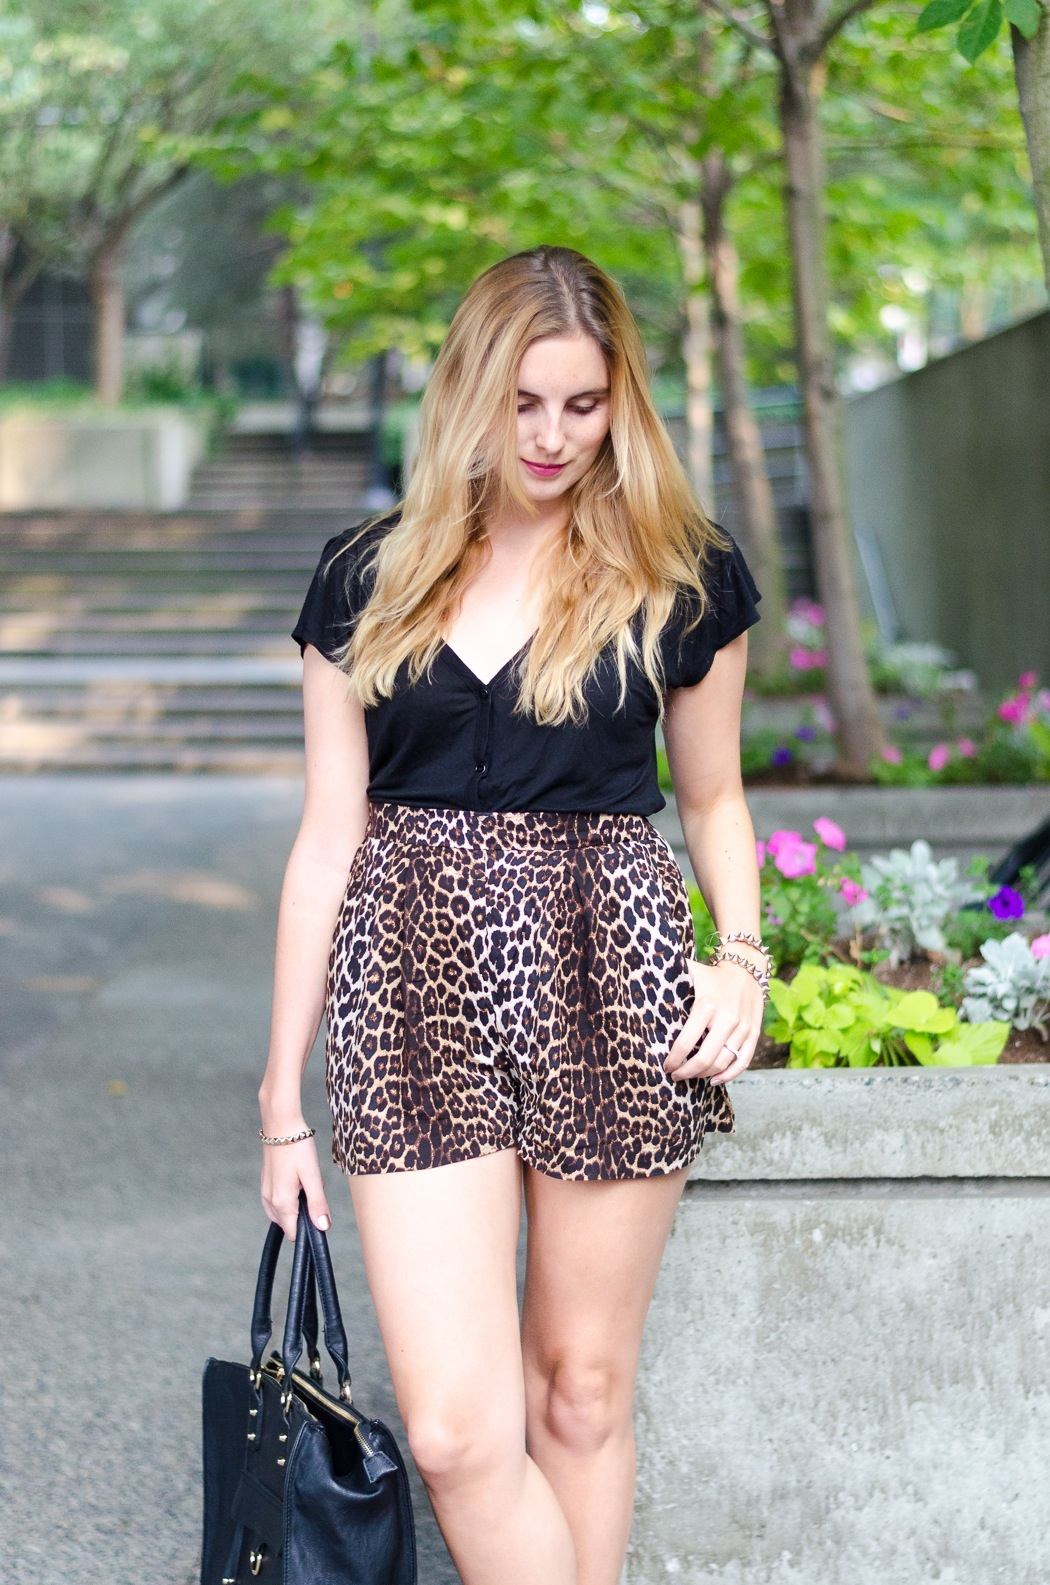 the urban umbrella style blog, vancouver style blog, vancouver fashion blog, vancouver lifestyle blog, vancouver health blog, vancouver fitness blog, vancouver travel blog, canadian faashion blog, canadian style blog, canadian lifestyle blog, canadian health blog, canadian fitness blog, canadian travel blog, bree aylwin, how to style leopard print, how to style high waist shorts, h&m leopard print shorts, how to wear cage heels, best lifestyle blogs, best fitness blogs, best health blogs, best travel blogs, top fashion blogs, top style blogs, top lifestyle blogs, top fitness blogs, top health blogs, top travel blogs